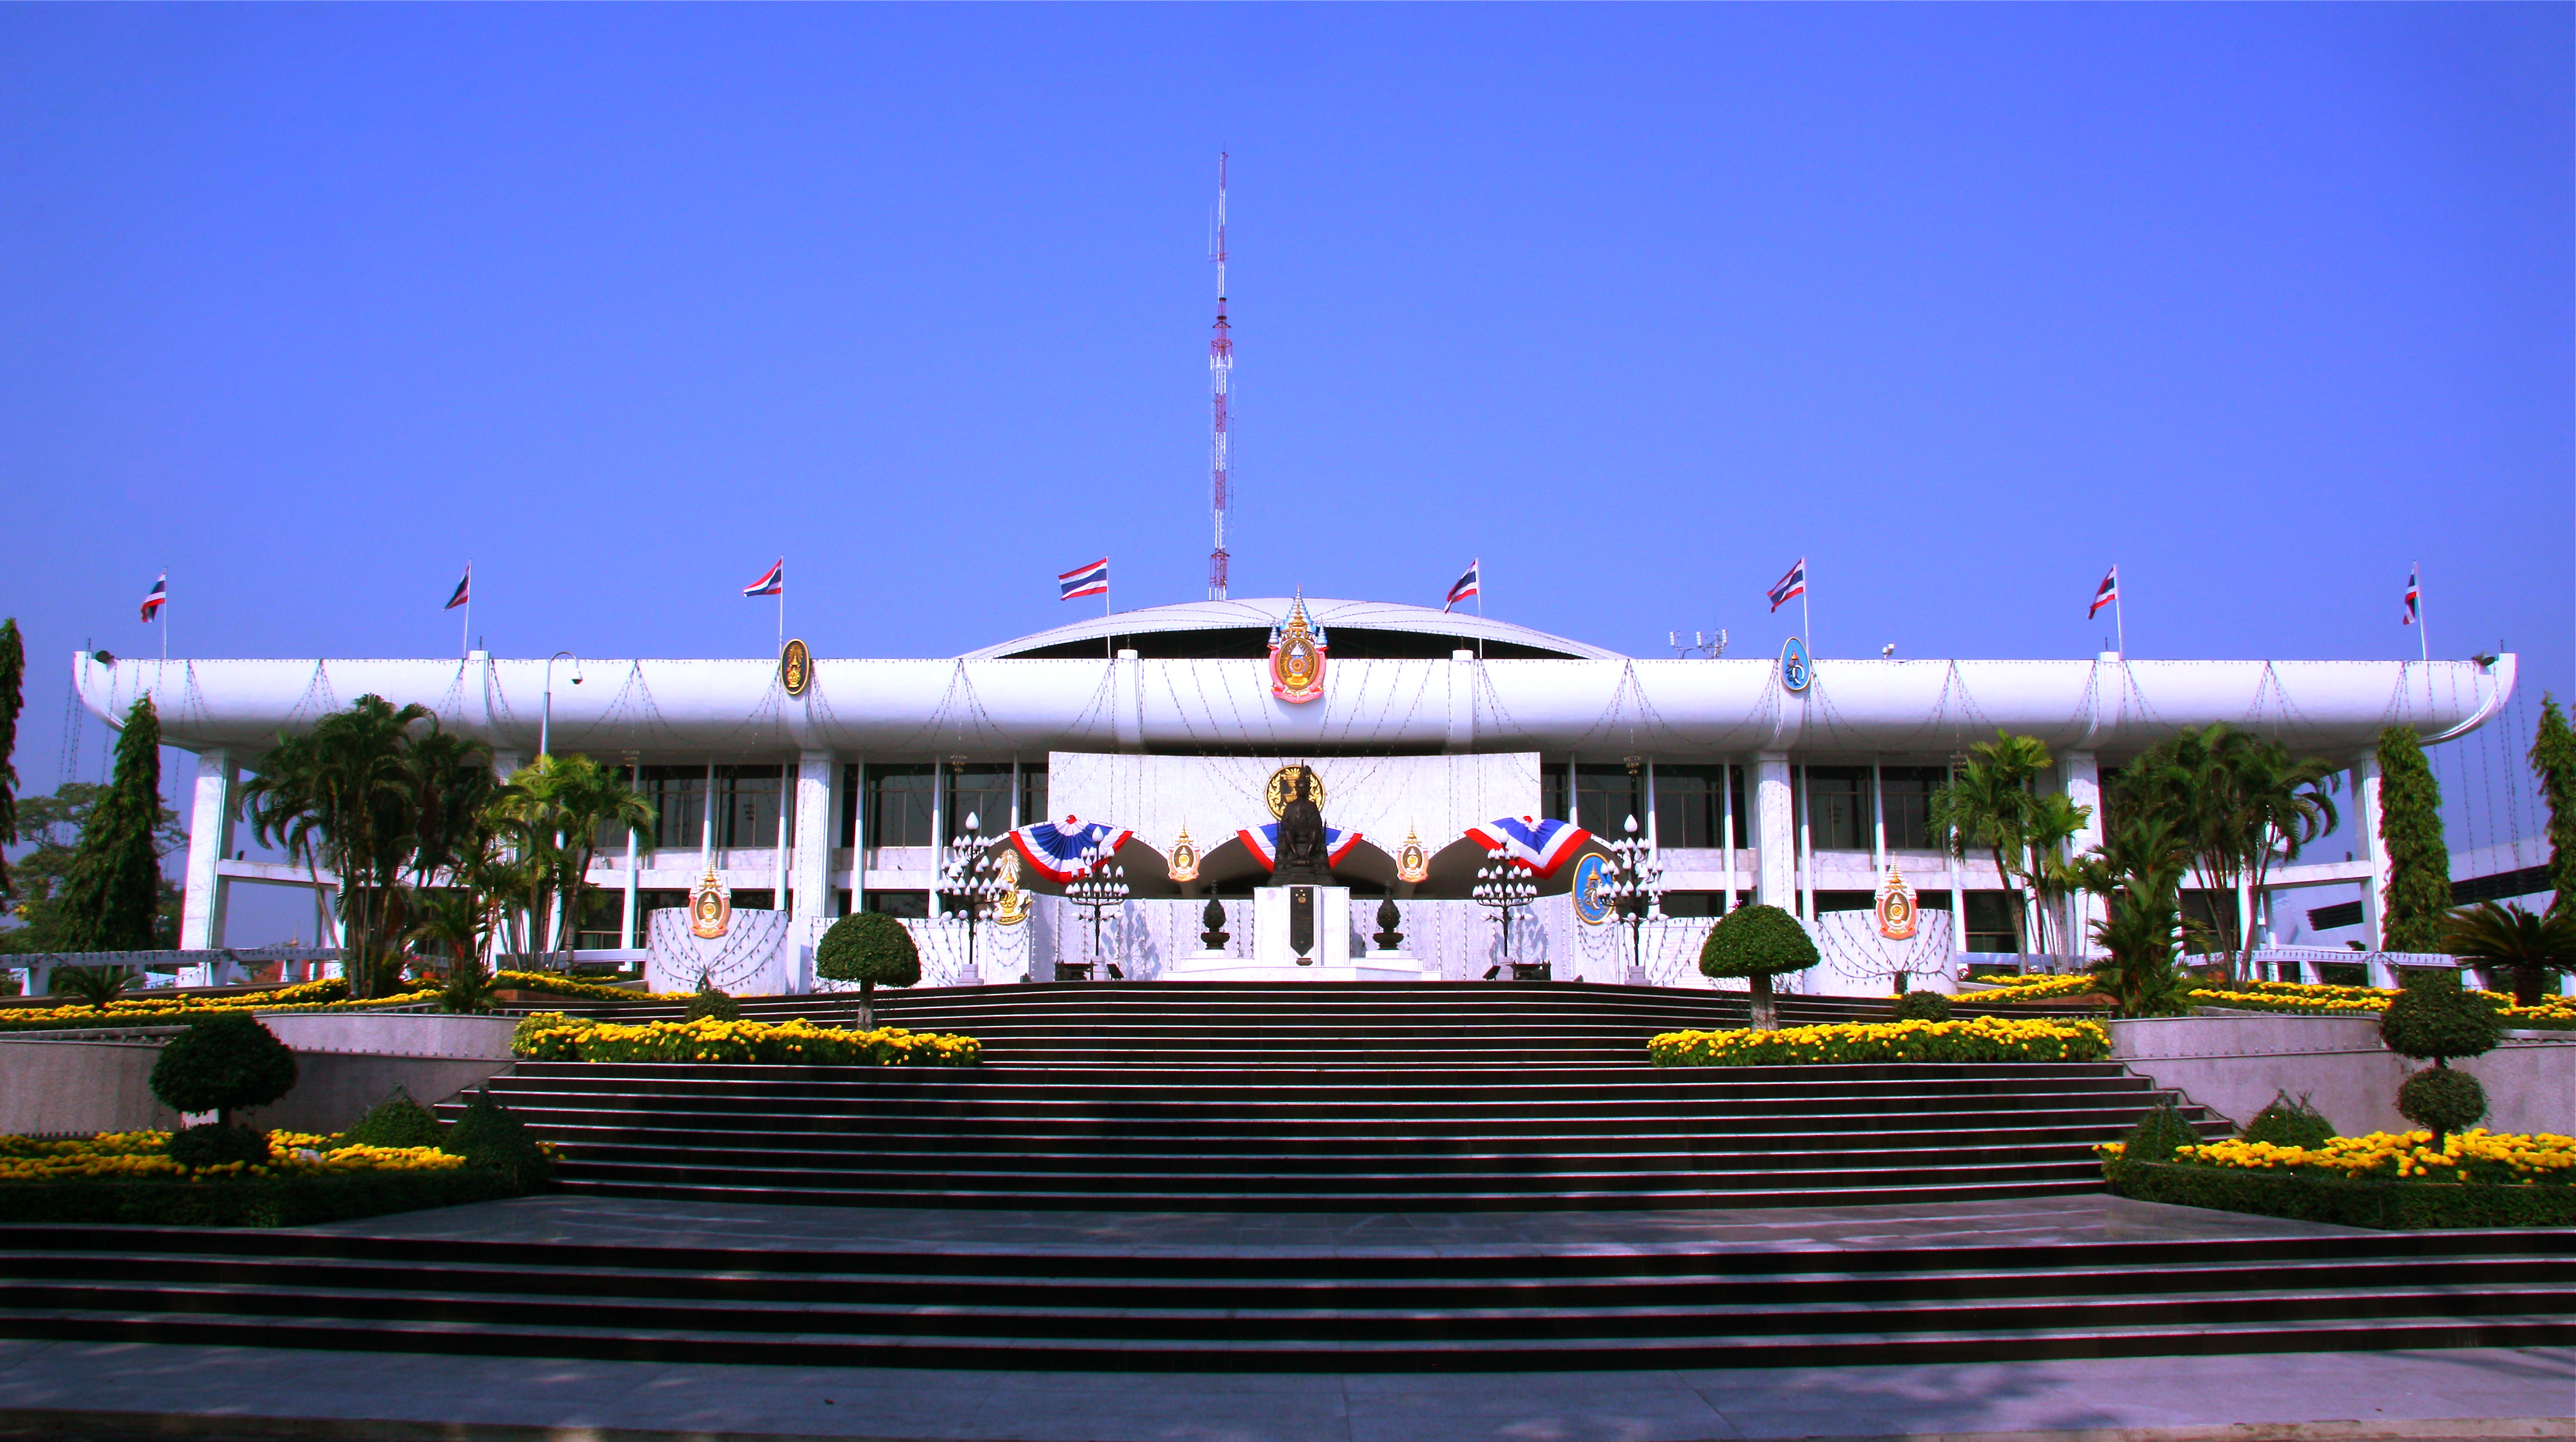 http://upload.wikimedia.org/wikipedia/commons/2/2d/Thai_Parliament_House.JPG